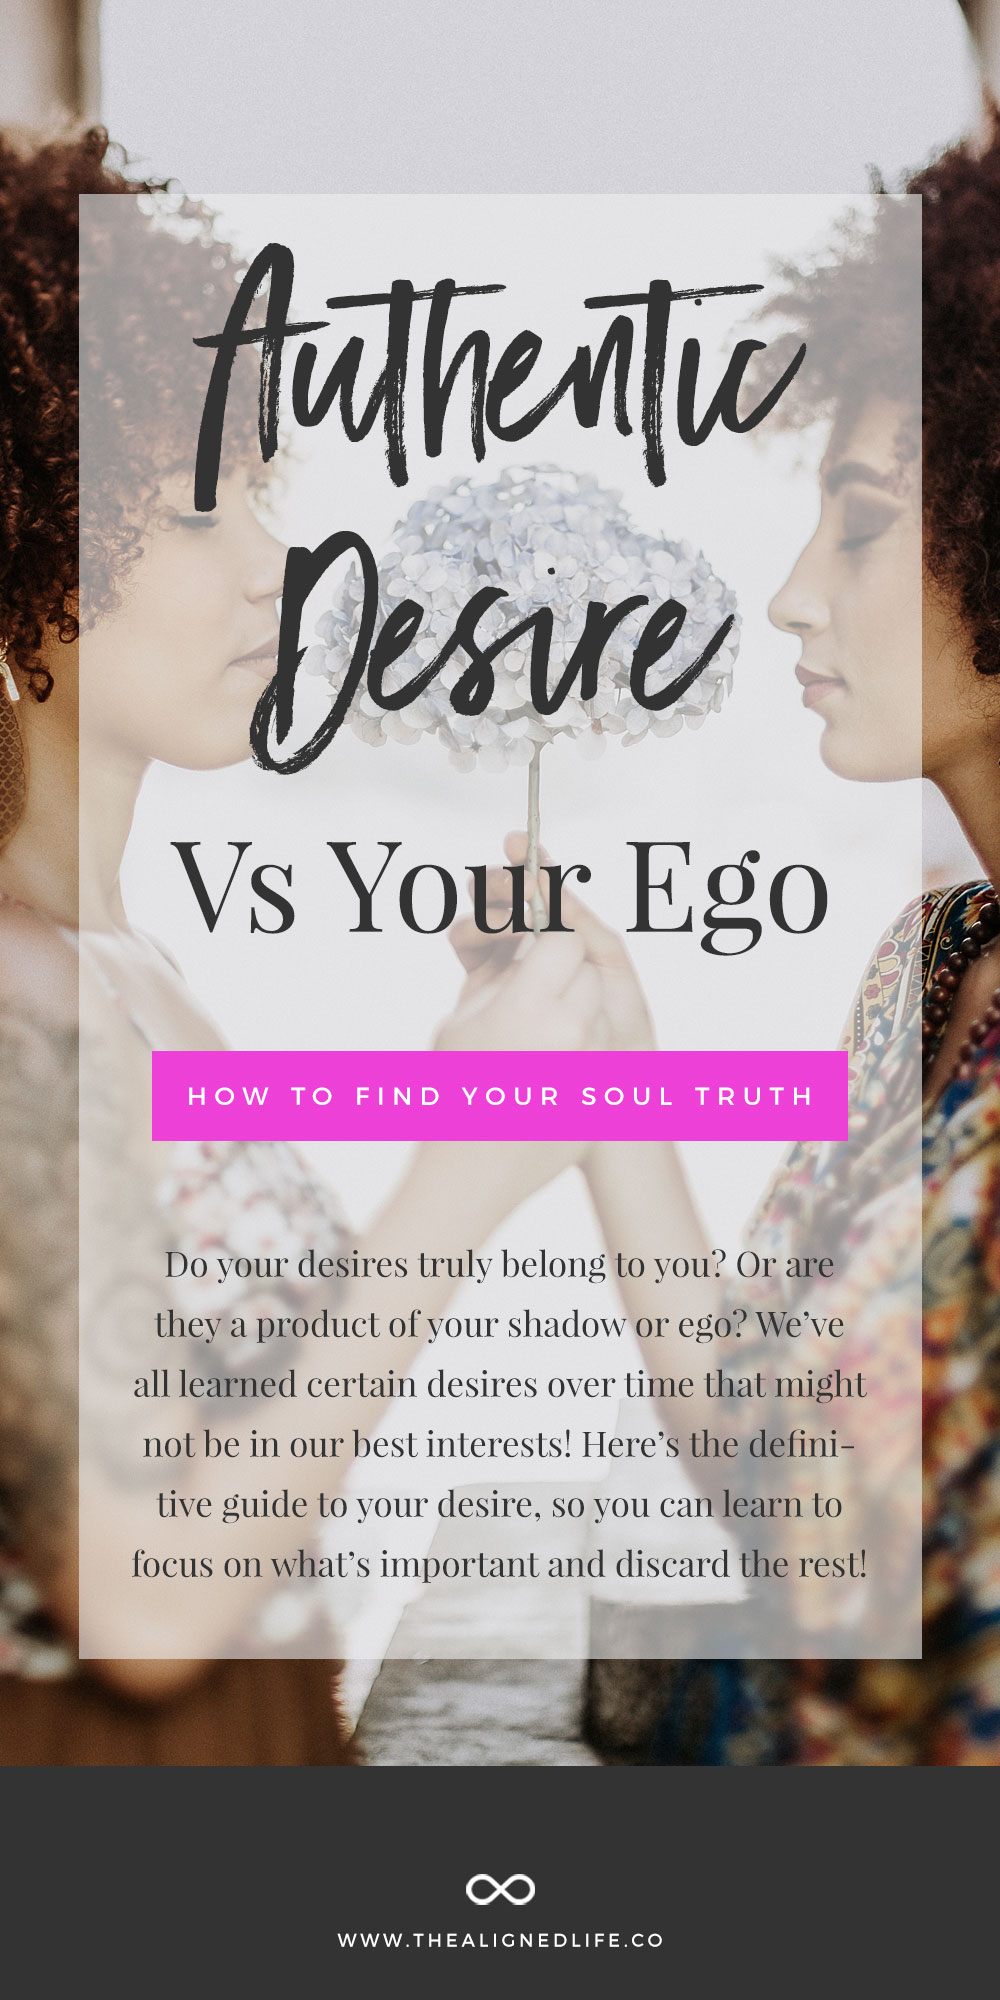 Authentic Desire Vs. Your Ego: How To Find Your Soul Truth